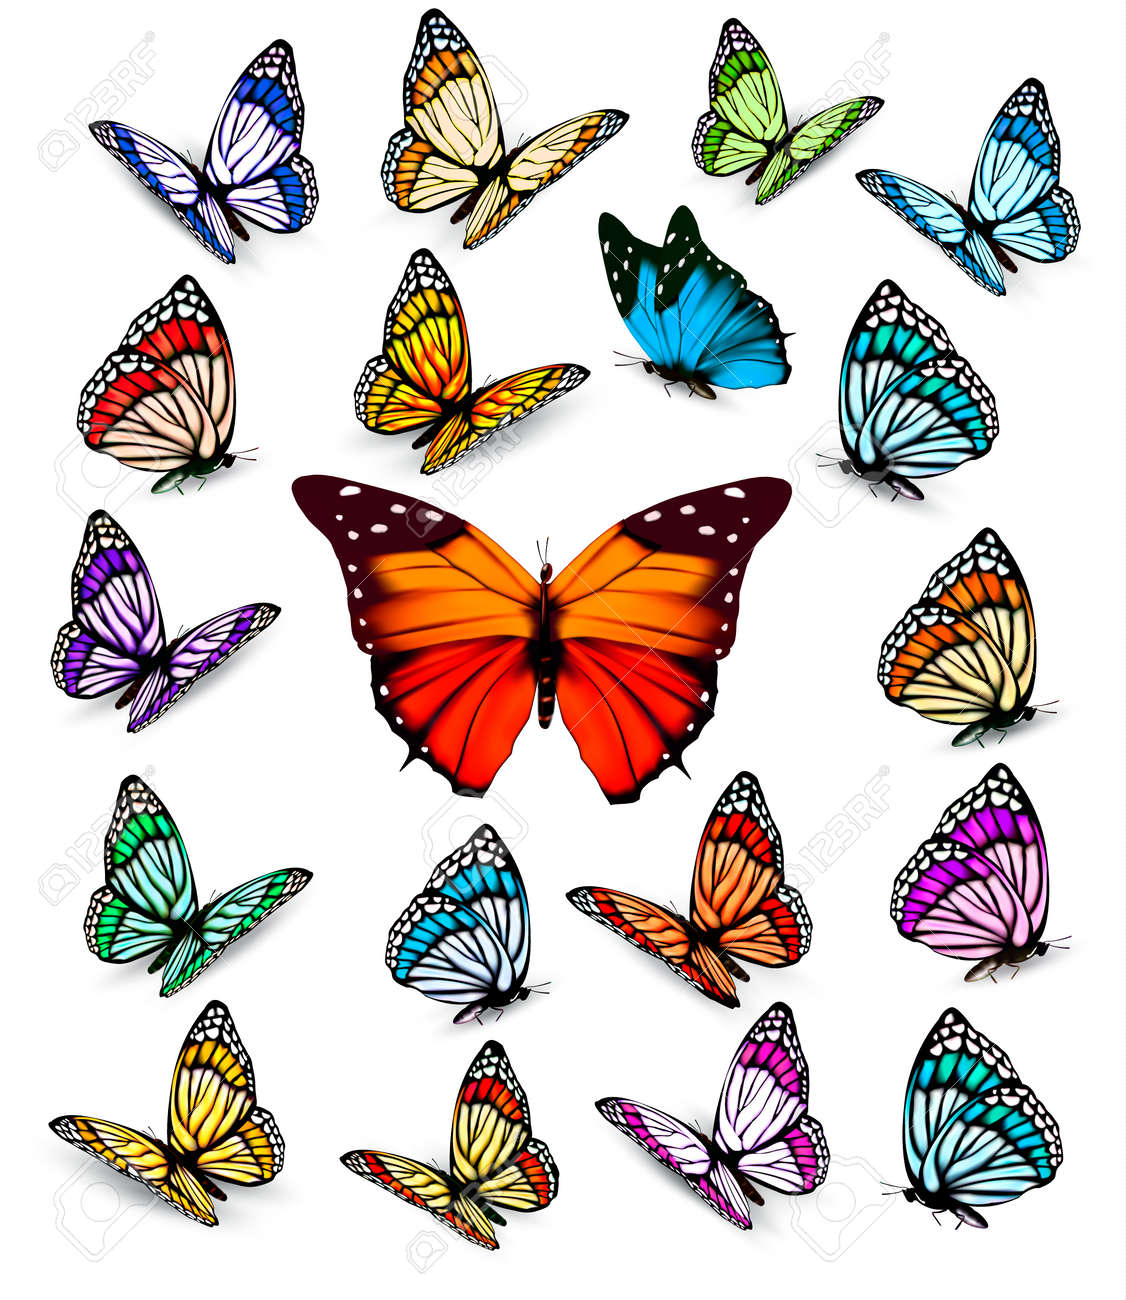 set of different colorful butterflies vector royalty free cliparts rh 123rf com free butterfly vector art free butterfly vector silhouette